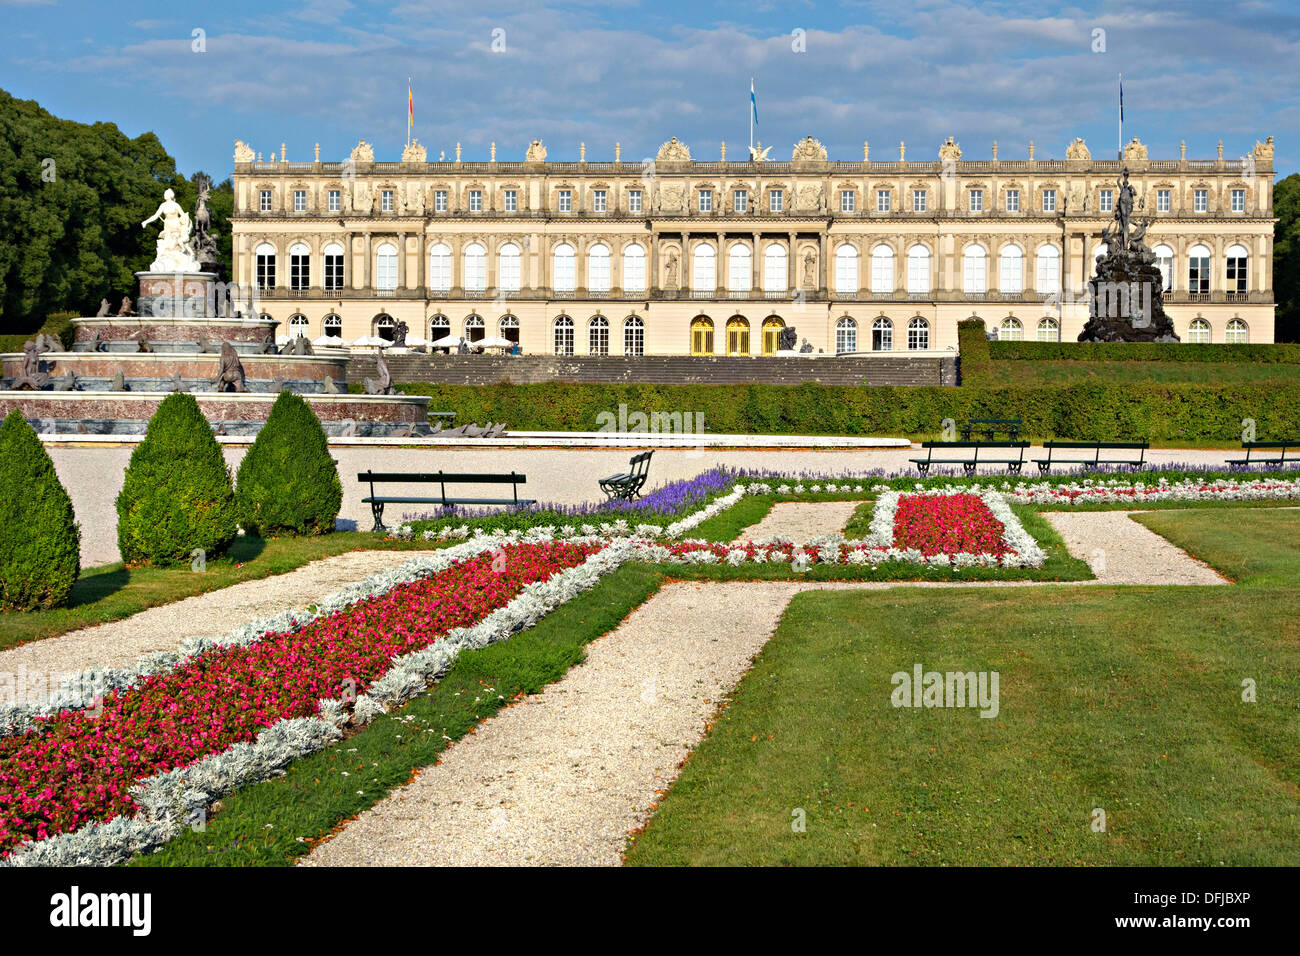 Herrenchiemsee Schloss Palace gardens, Herreninsel, Chiemsee Chiemgau, Upper Bavaria Germany - Stock Image